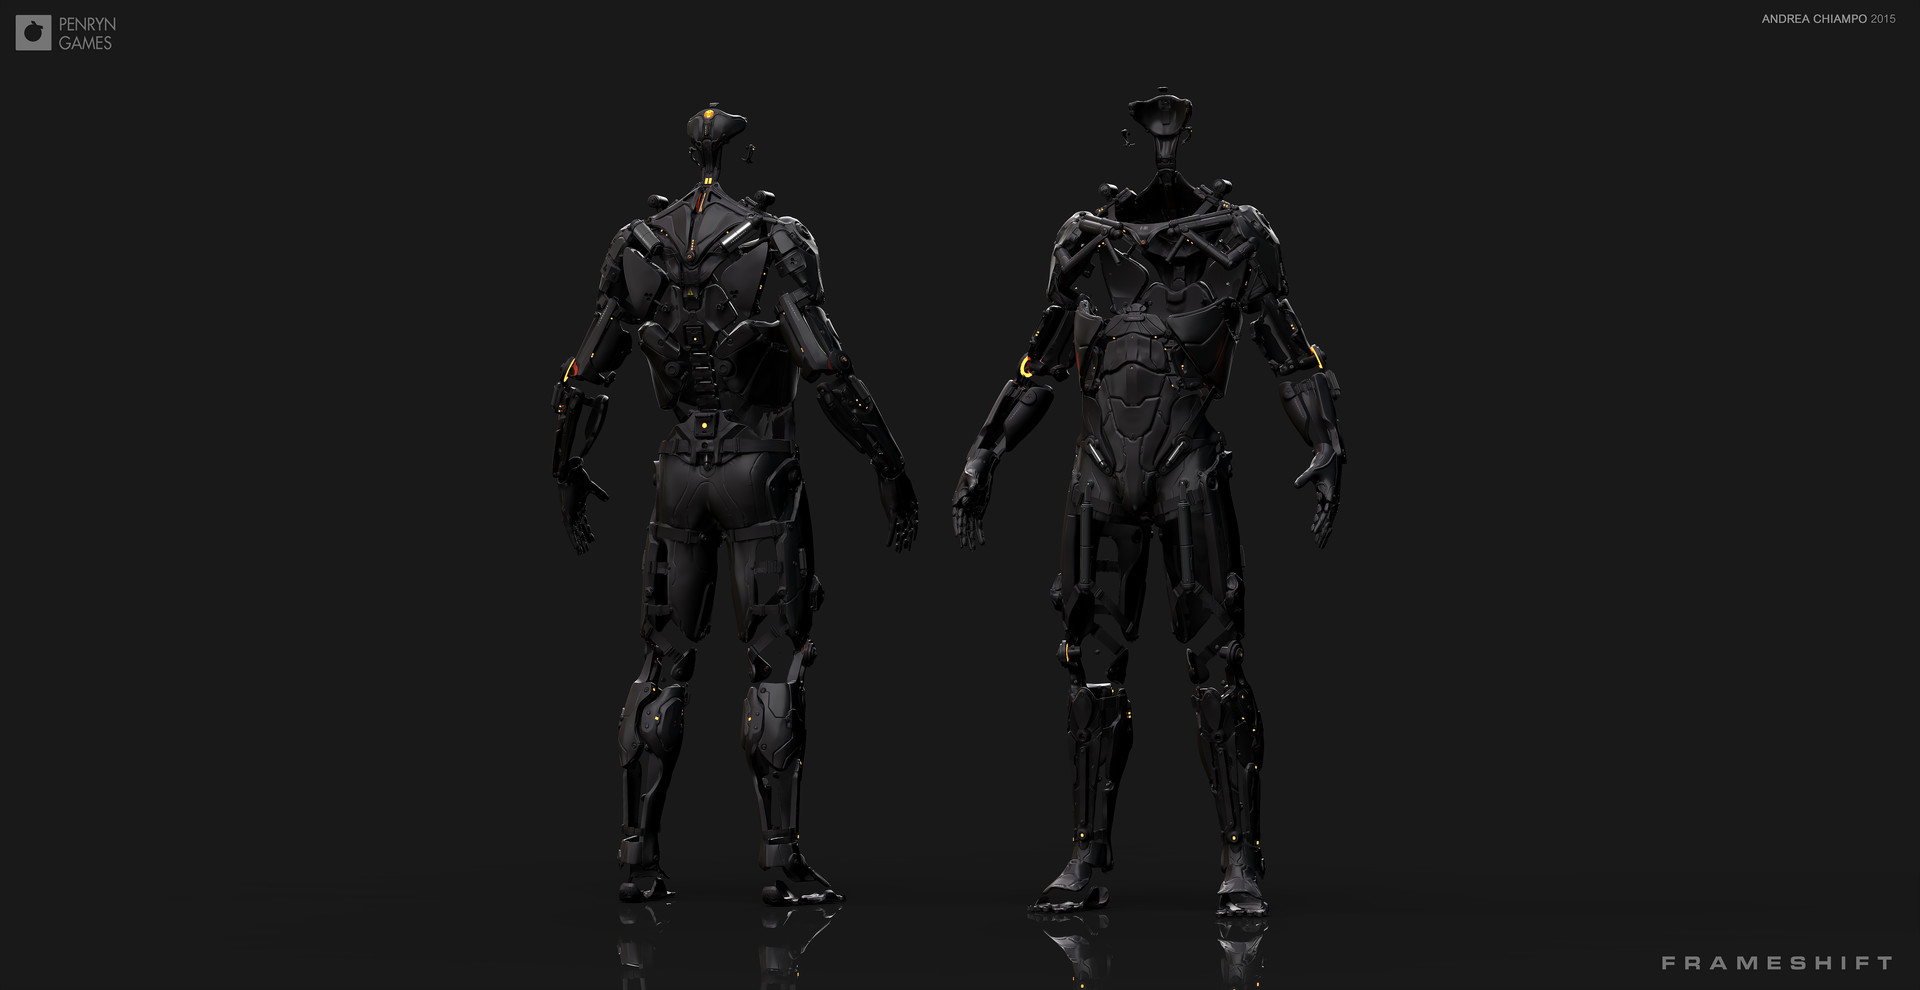 Andrea chiampo exoskeleton character perspective images a